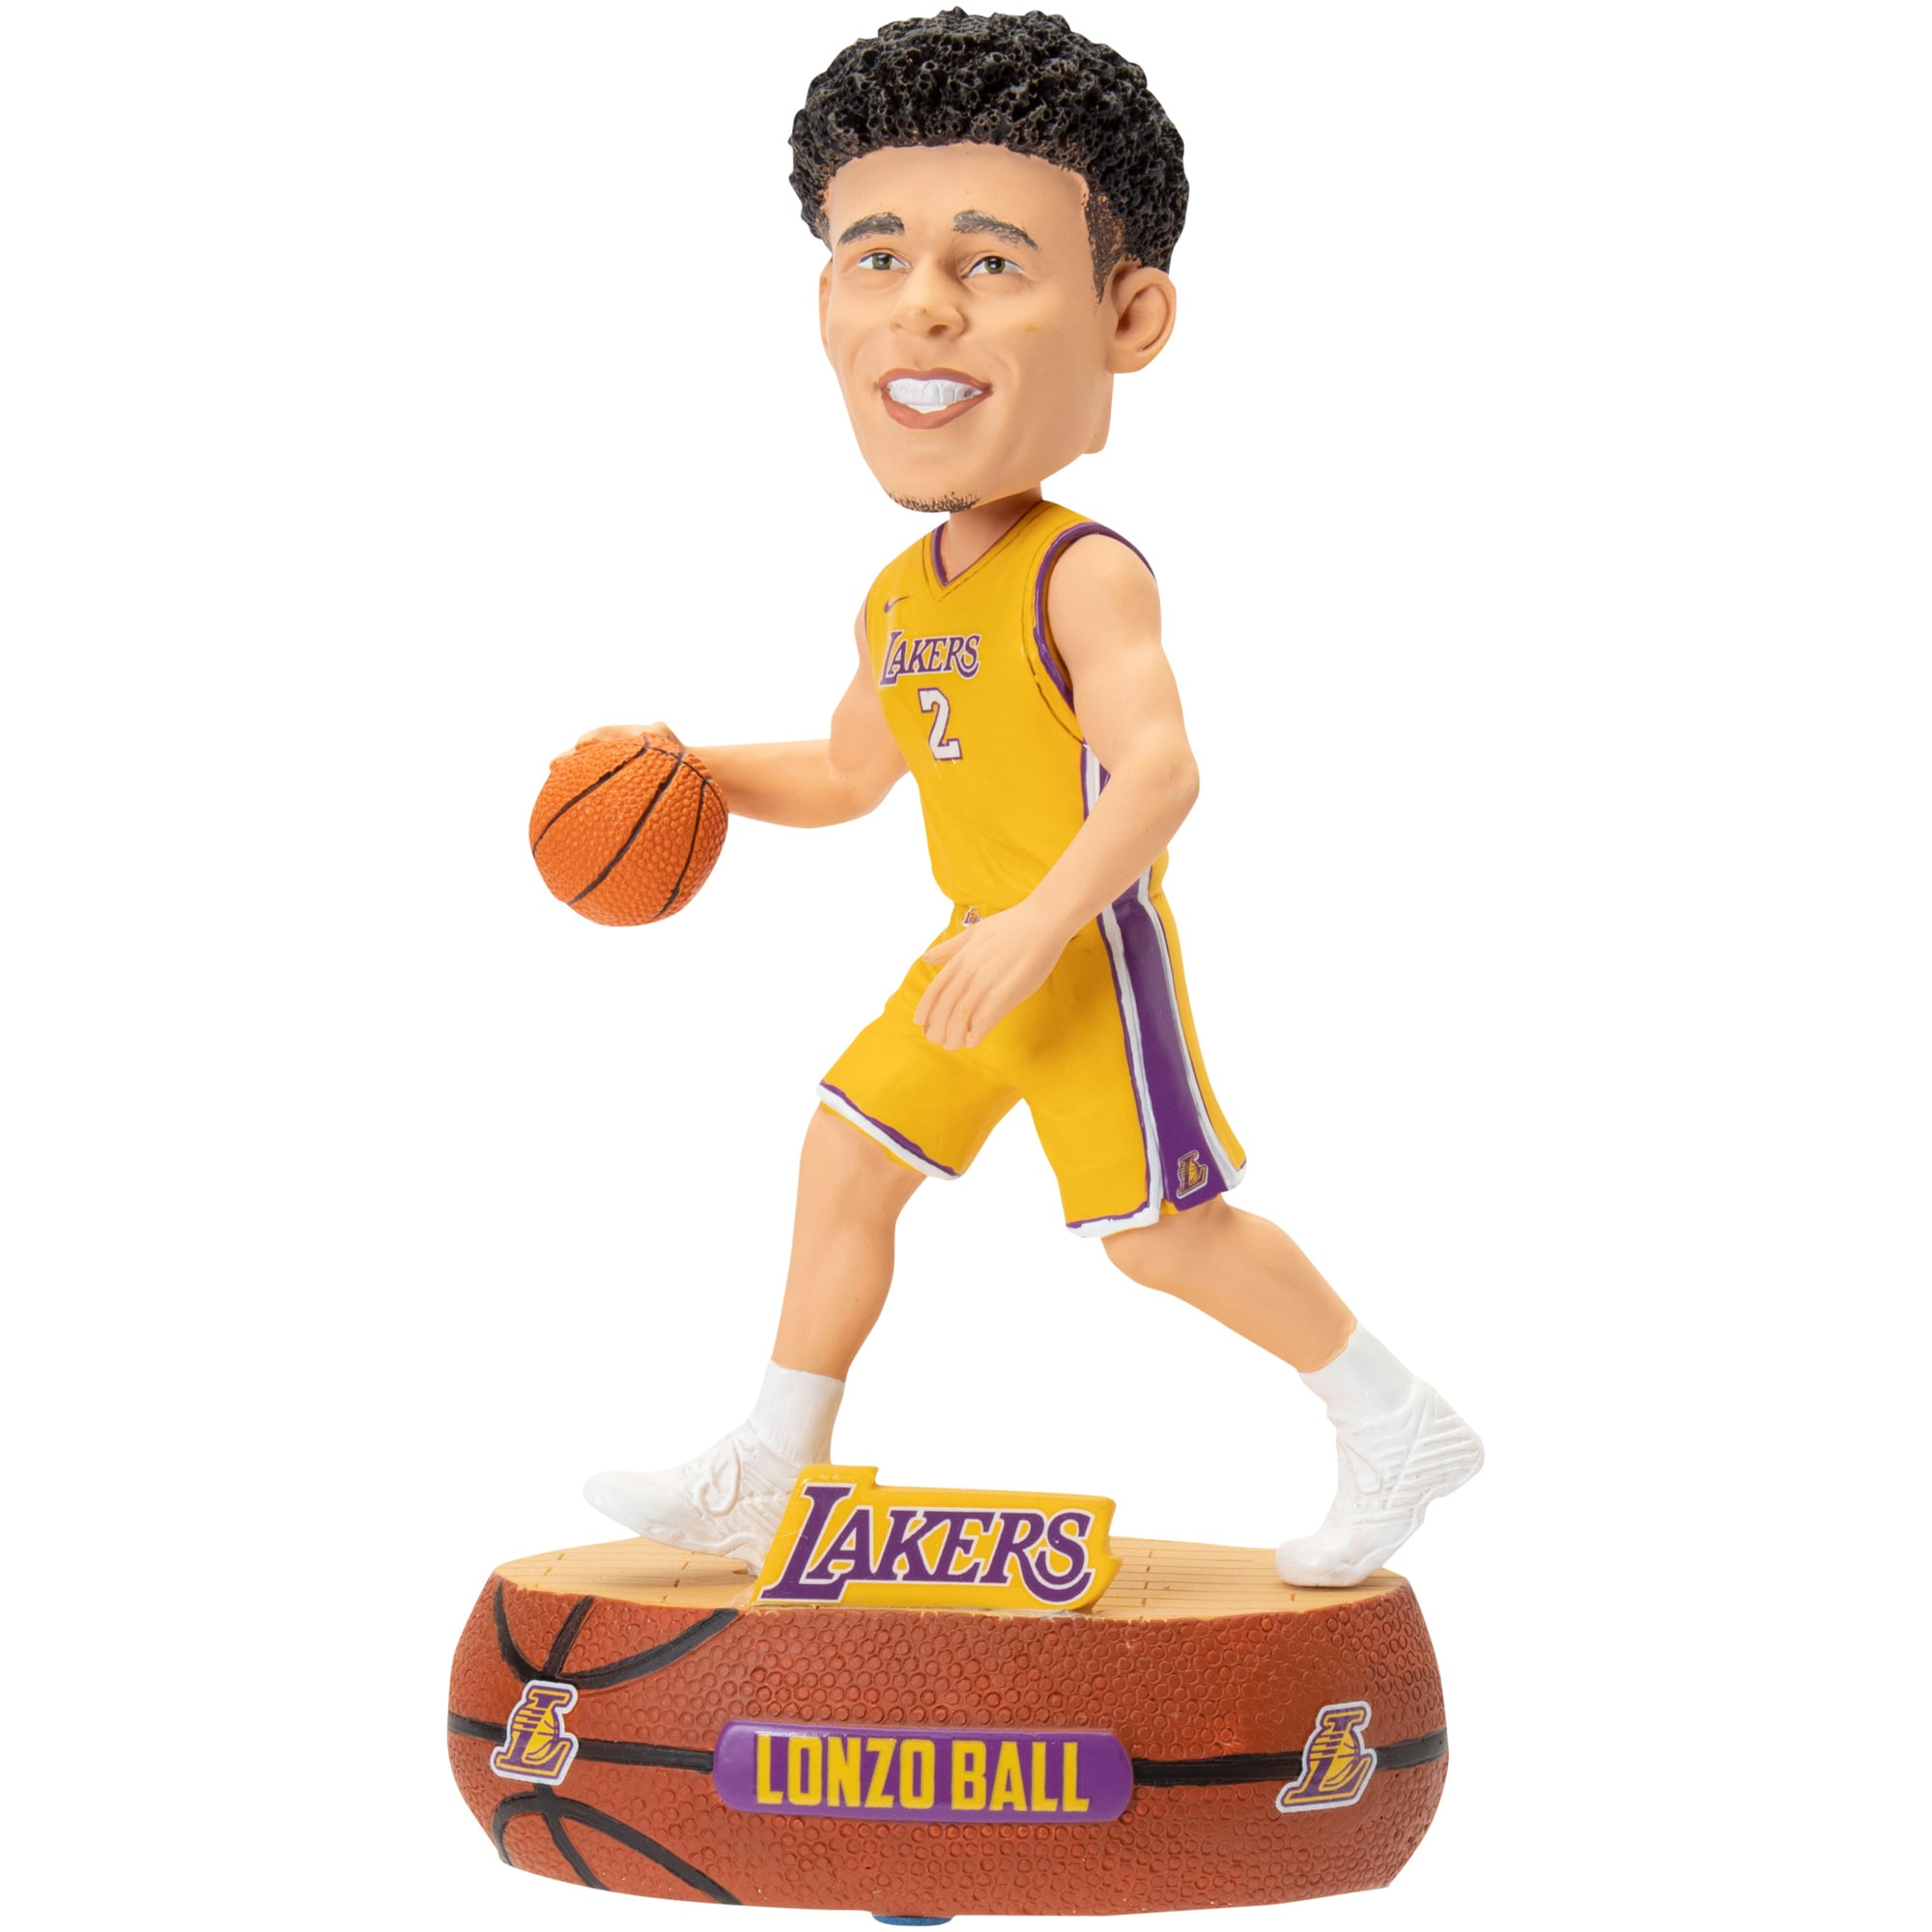 Lonzo Ball Los Angeles Lakers Baller Player Bobblehead